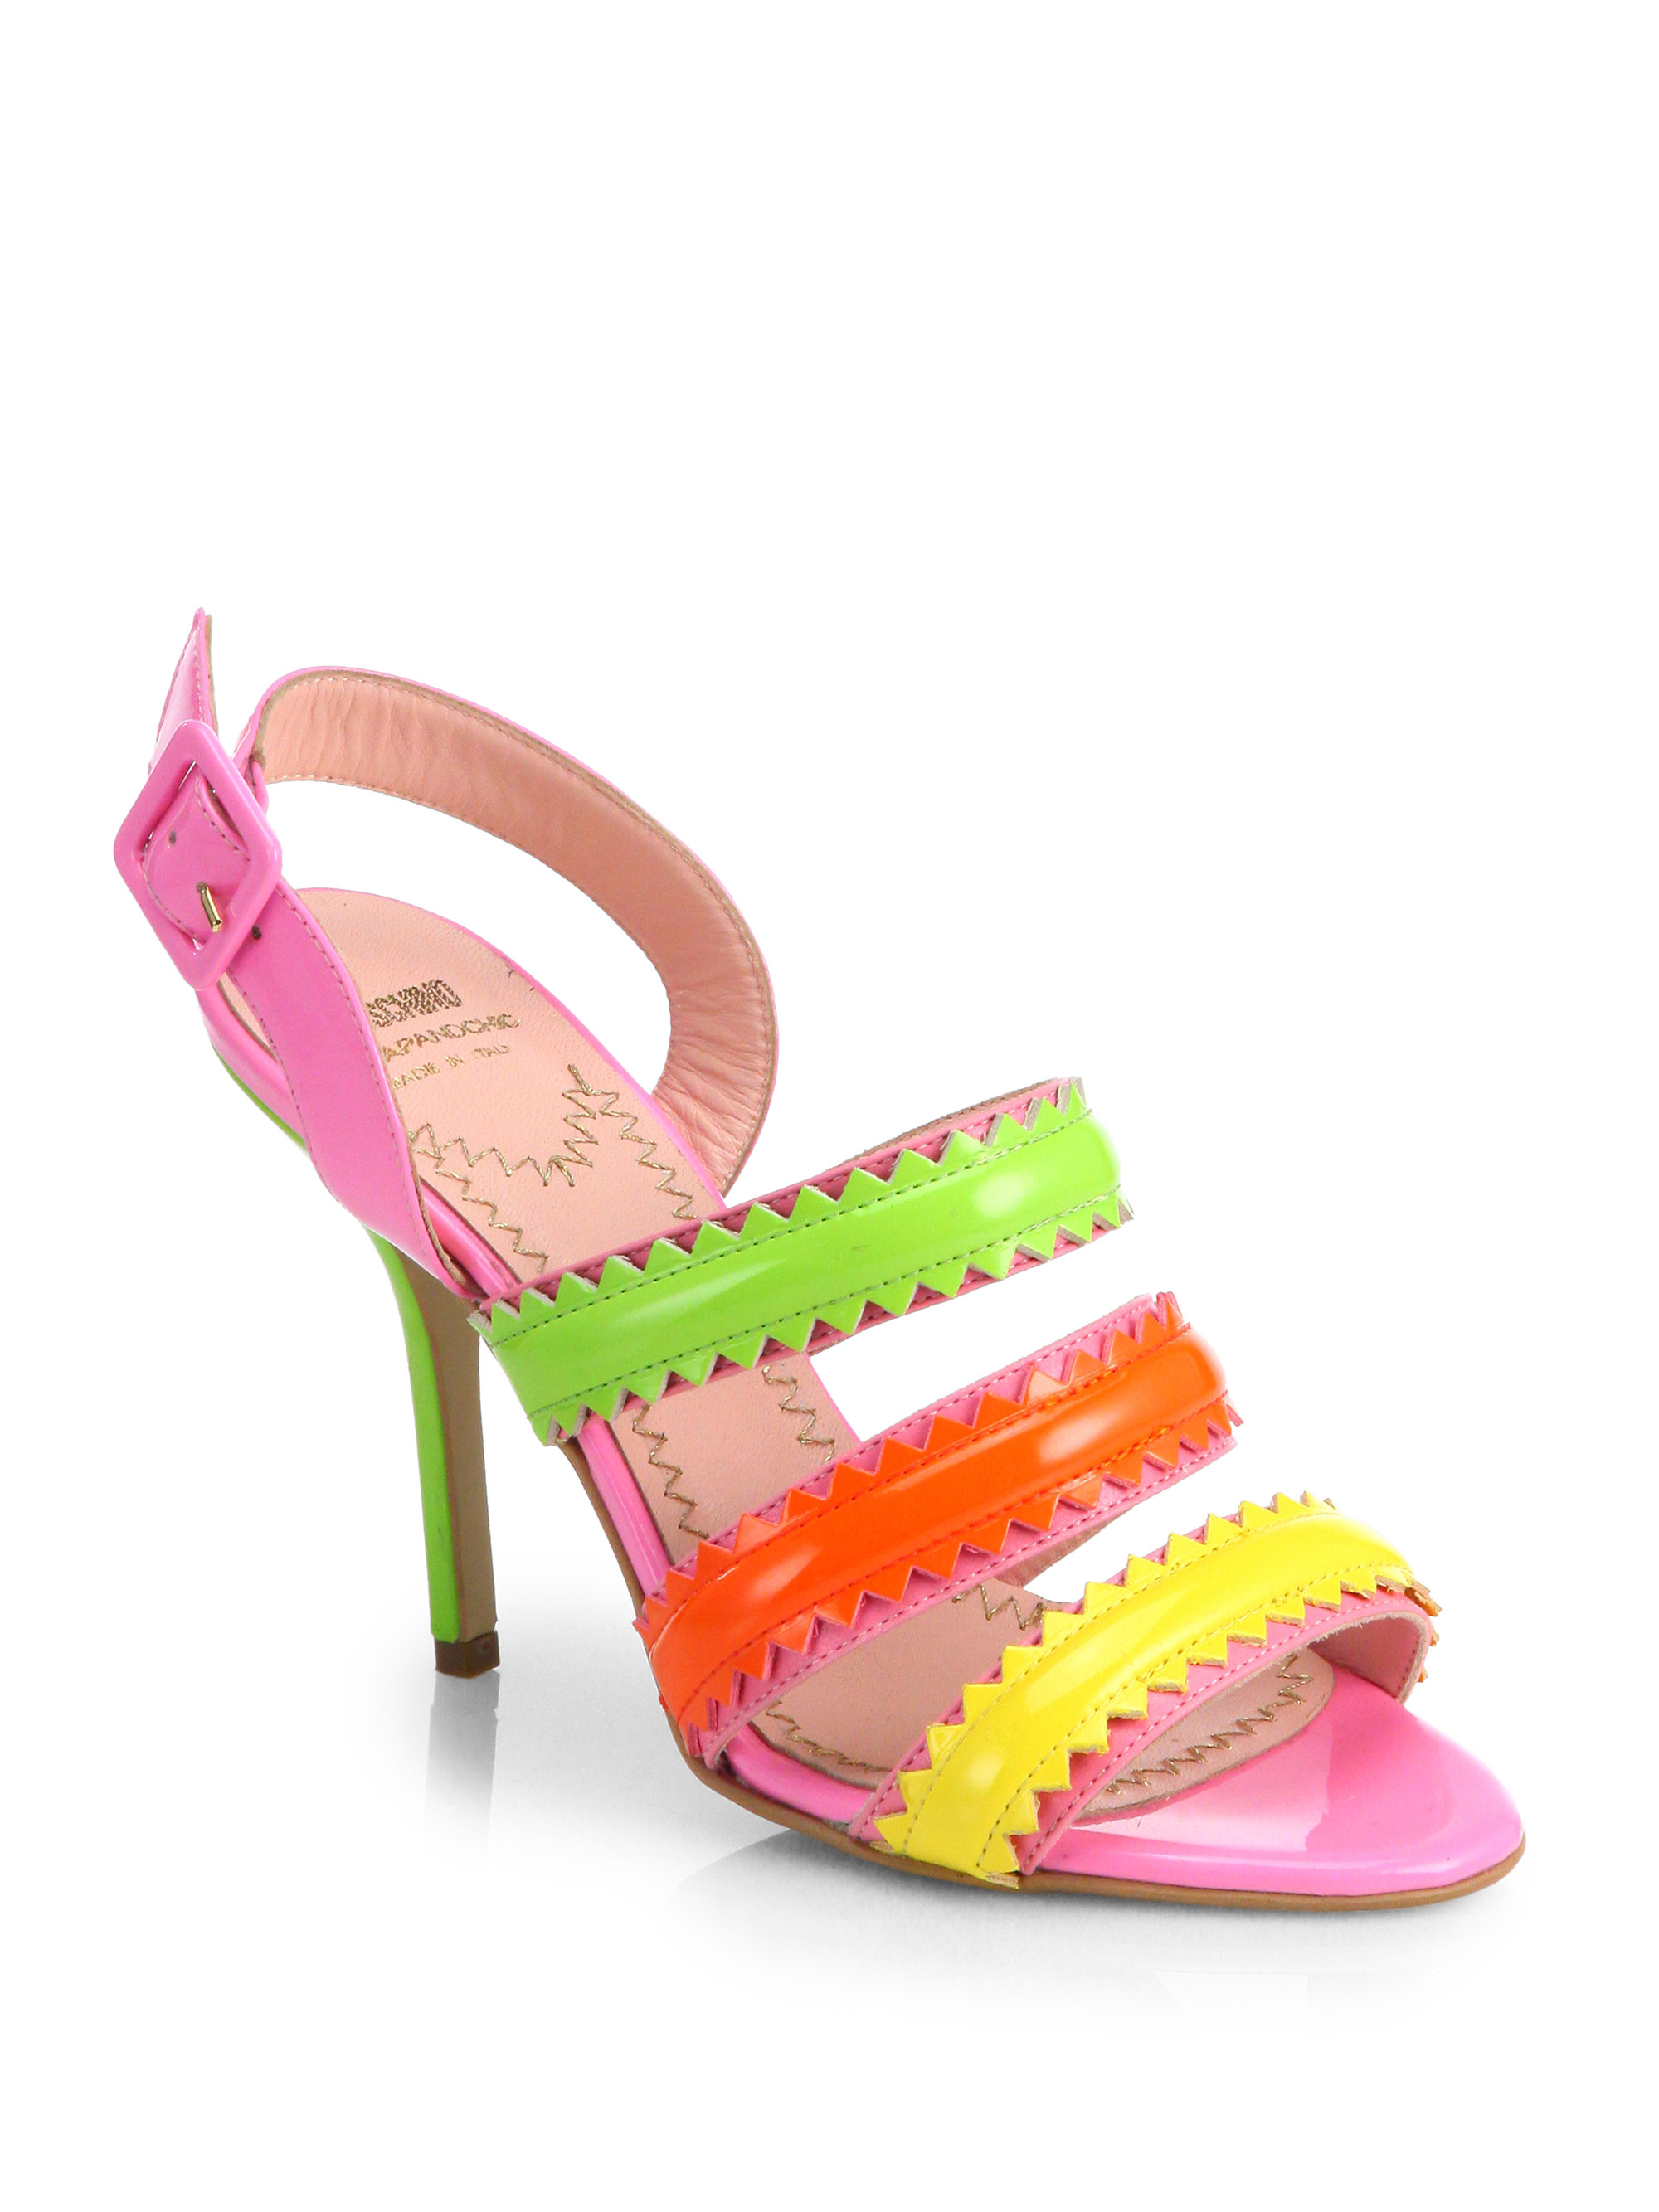 Lyst Boutique Moschino Zigzag Striped Leather Sandals